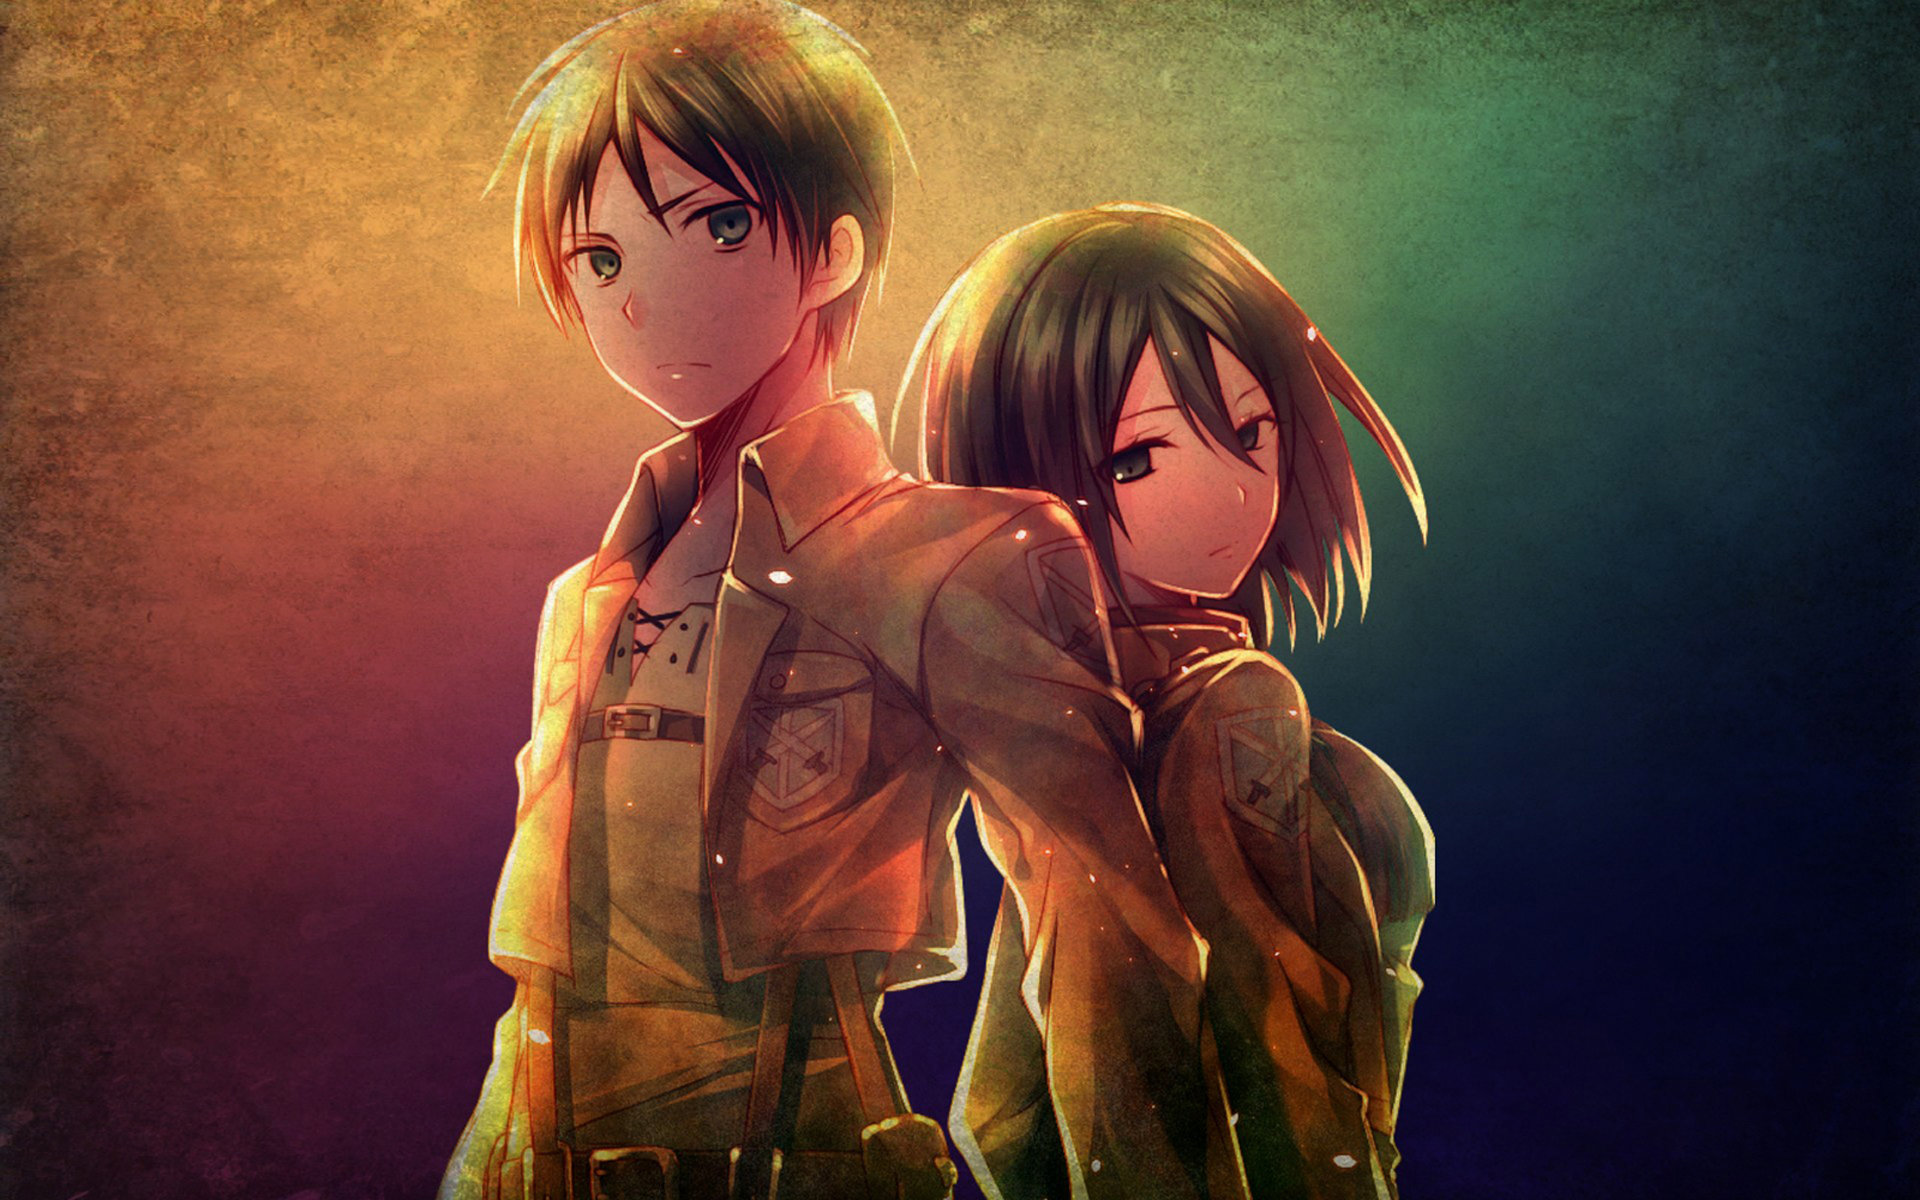 Download hd 1920x1200 Attack On Titan desktop background ID:206087 for free